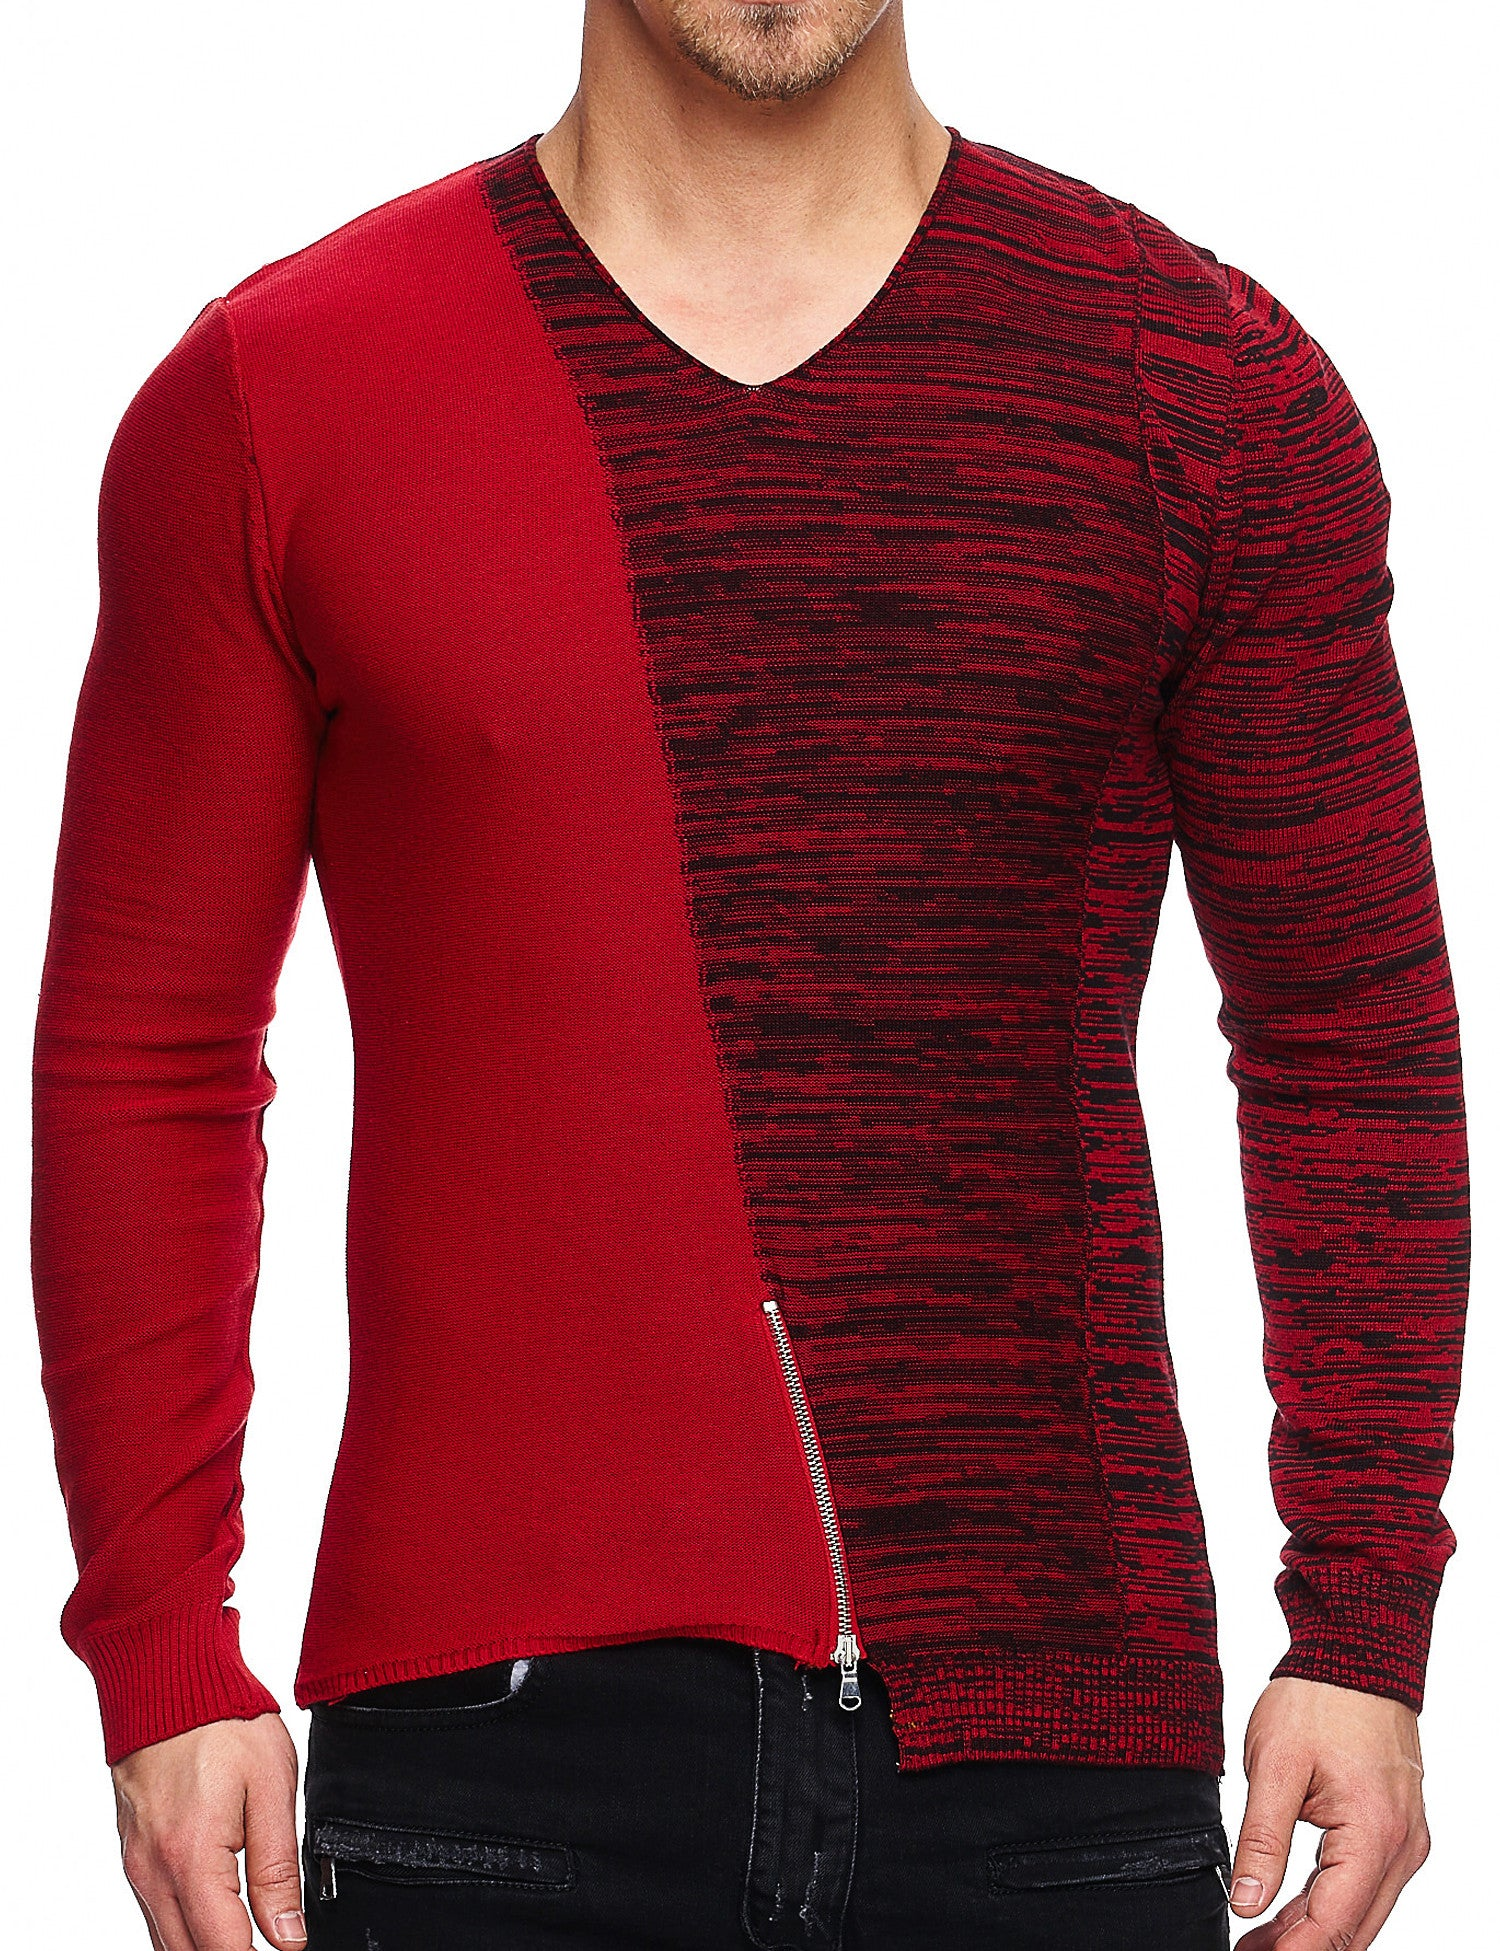 Free Side 15-002 Sweatshirt Red